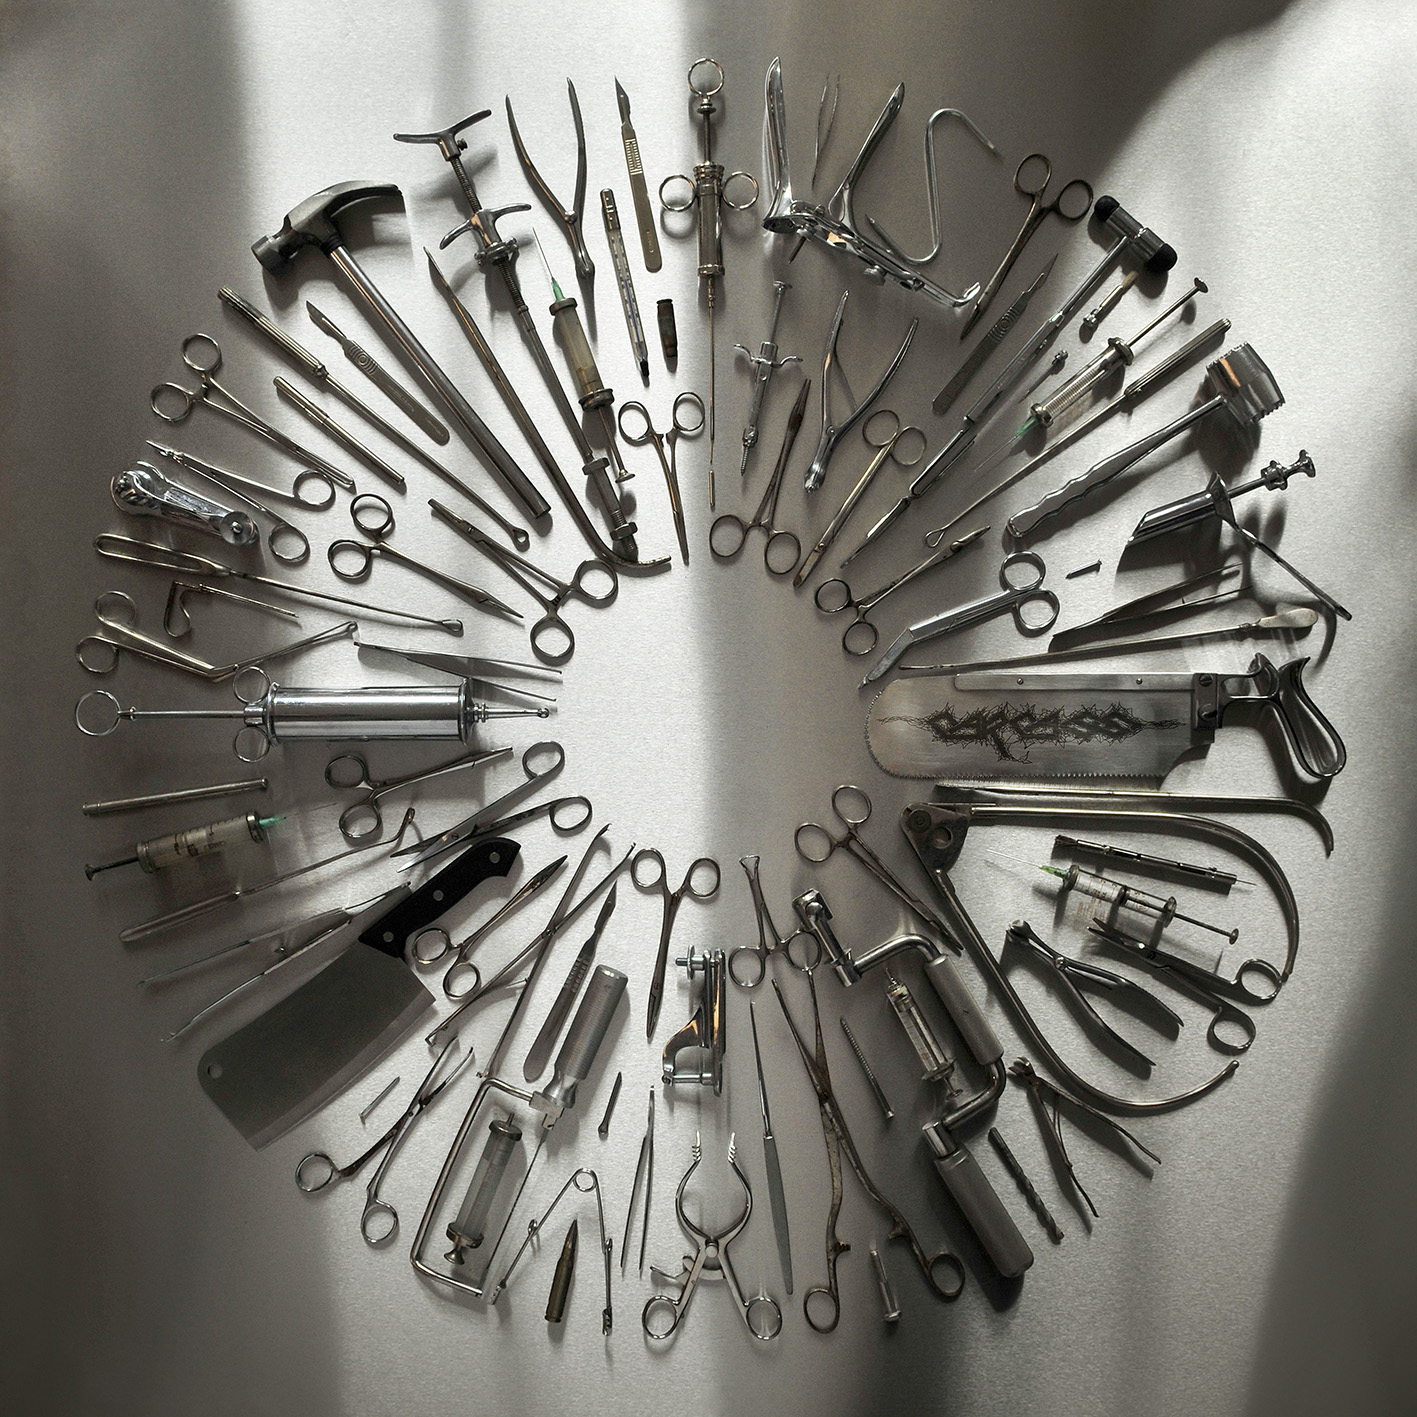 Carcass – Surgical Steel Review